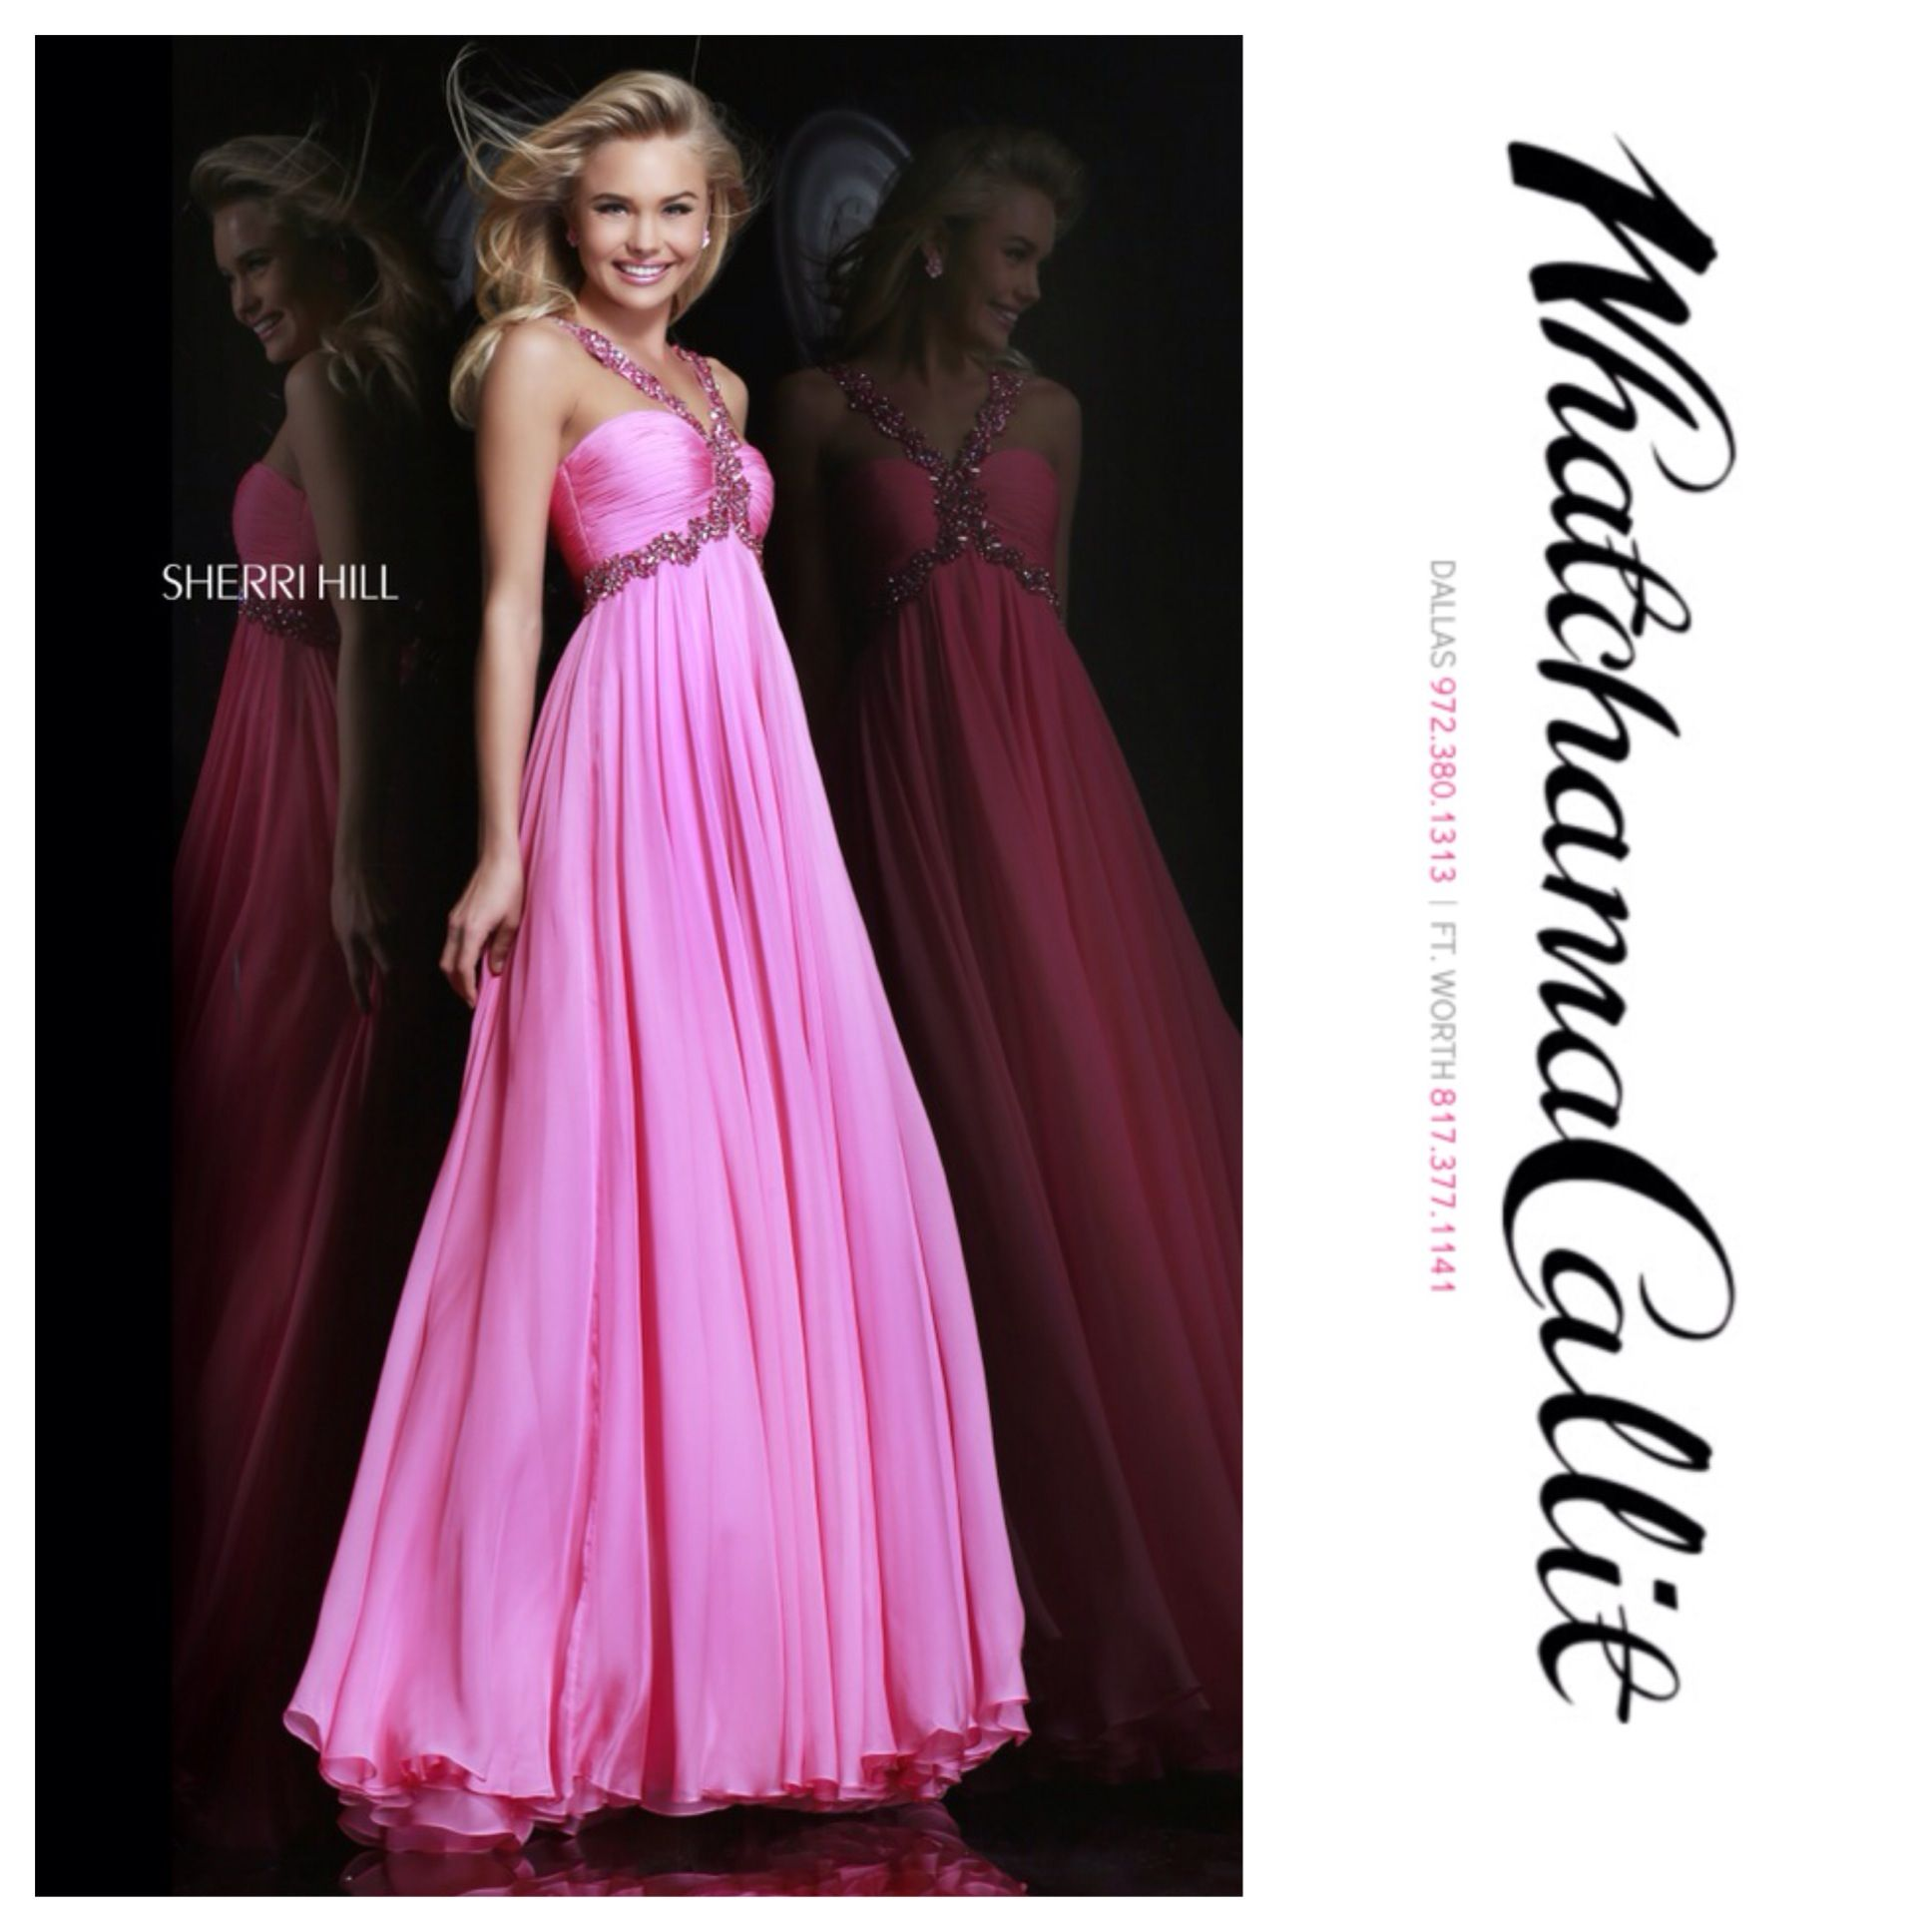 Sherri hill dress available at whatchamacallit boutique for